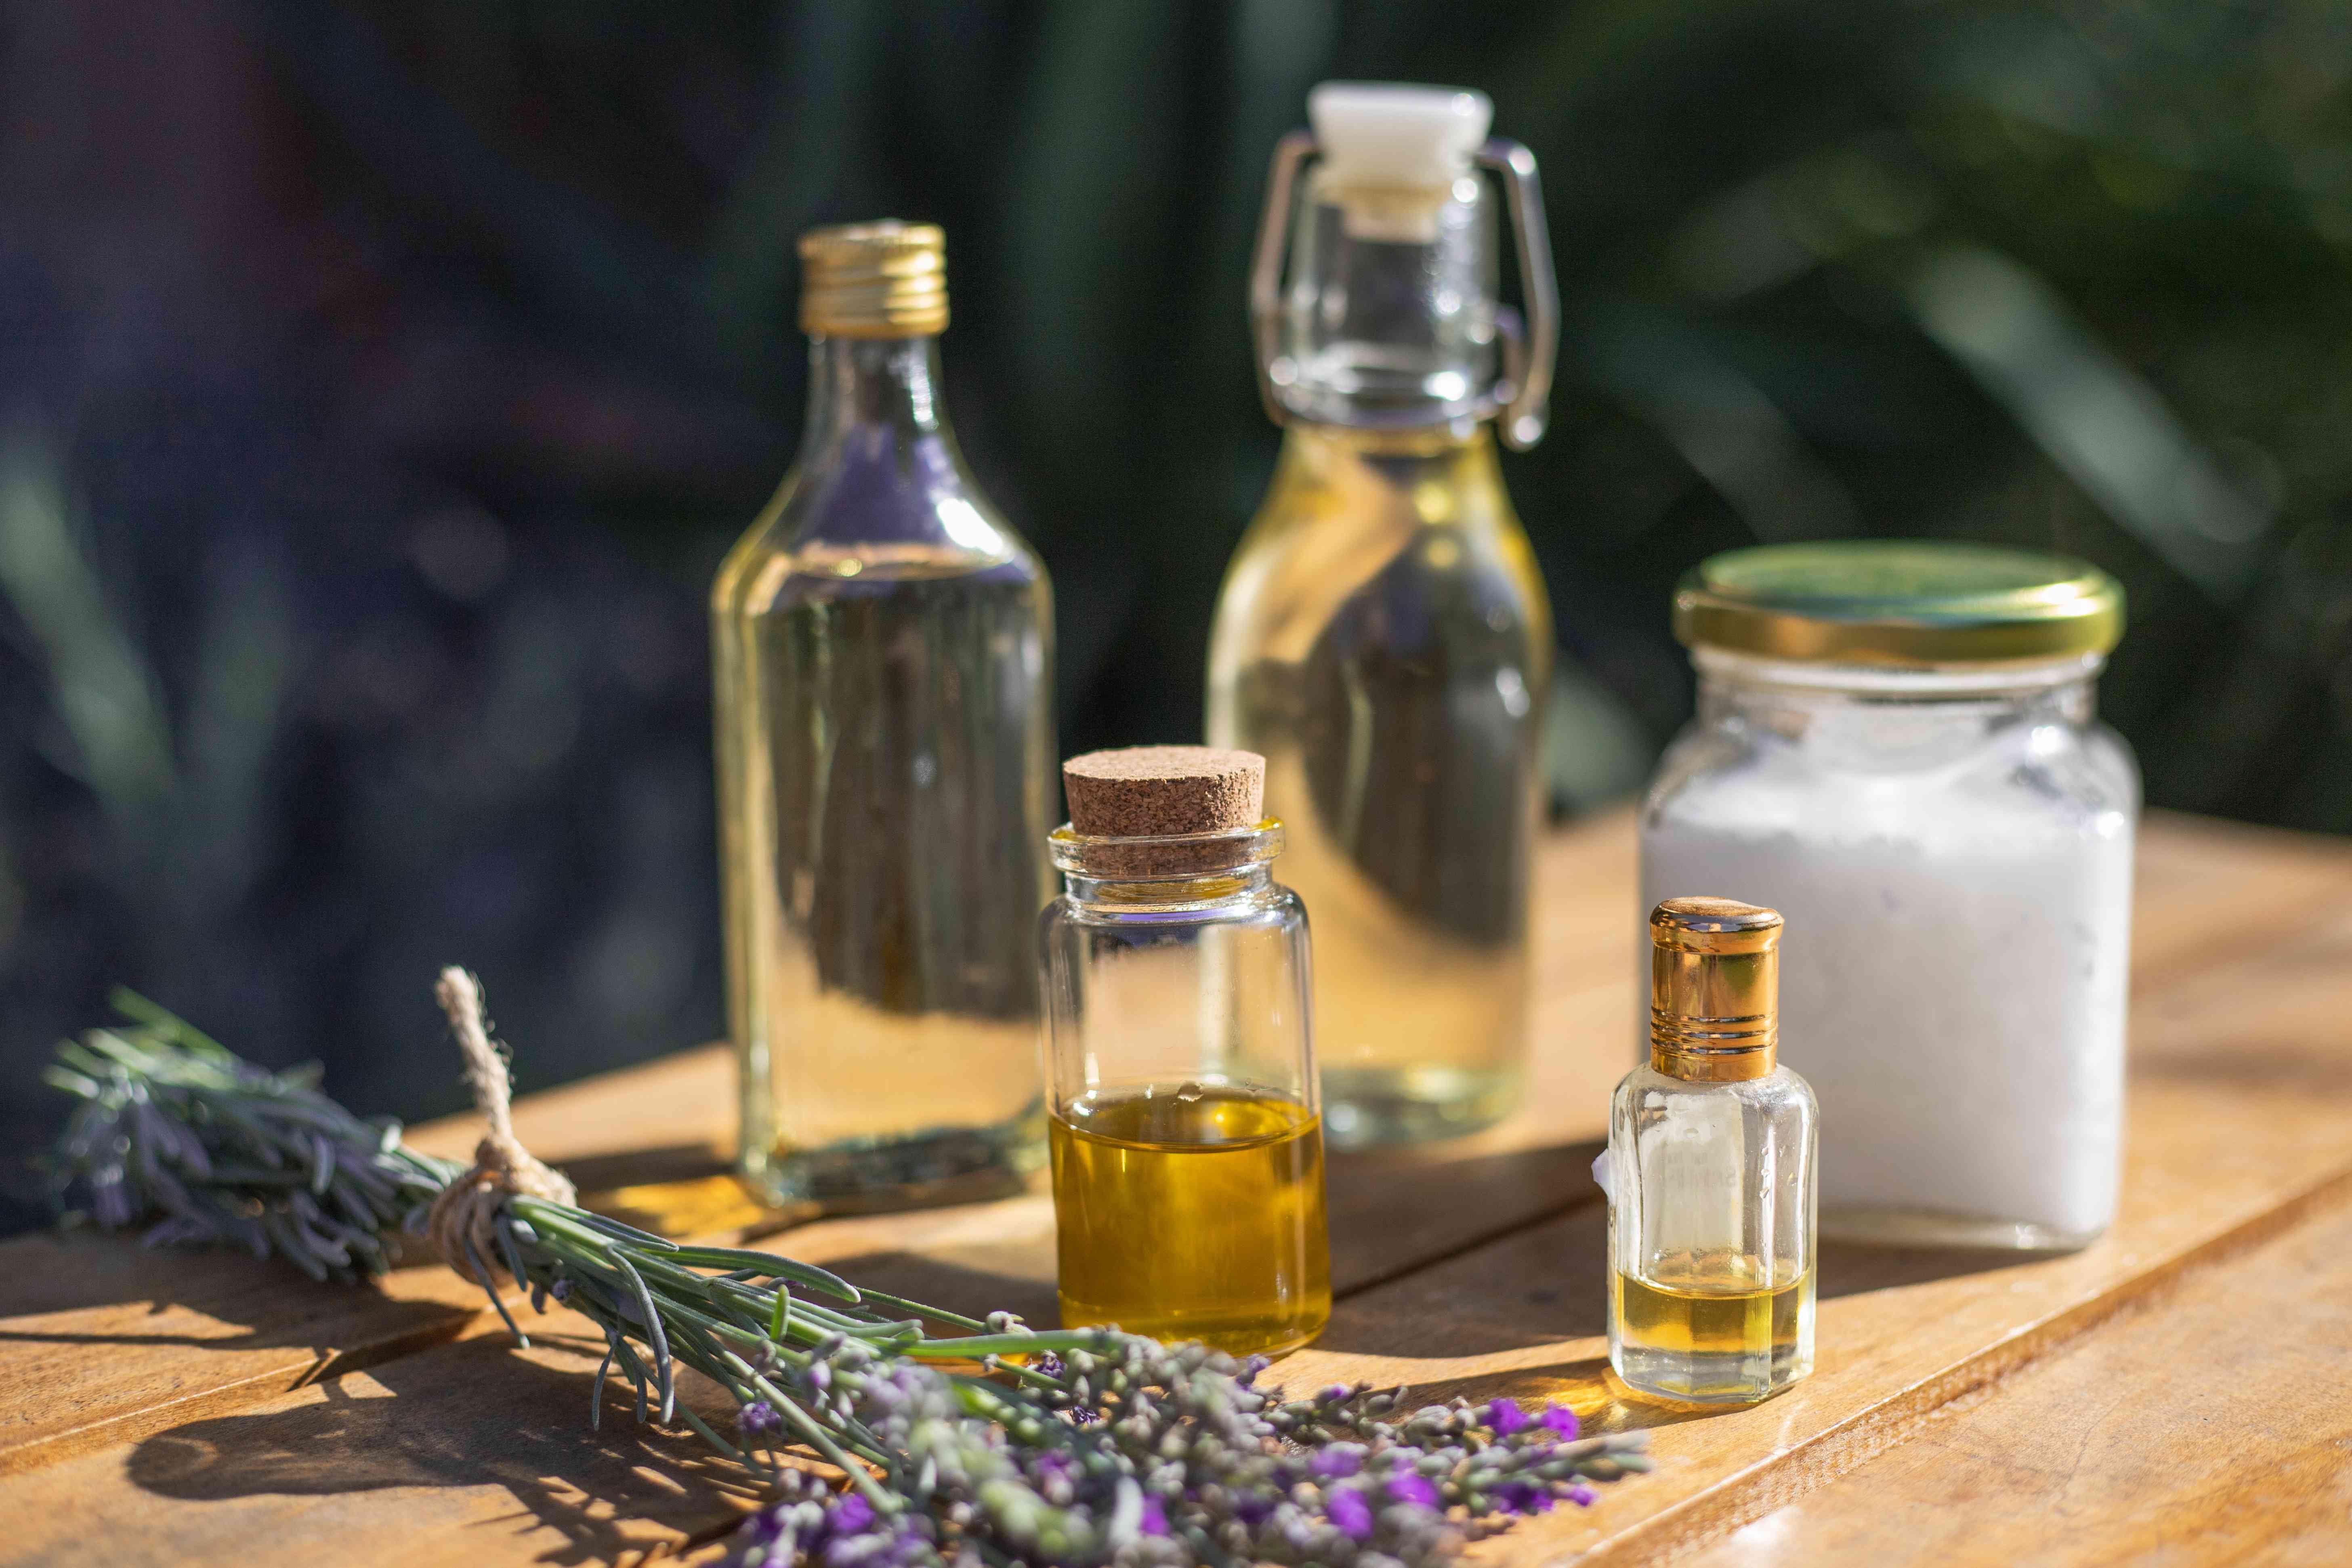 ingredients for DIY lavender oil on wooden table include dried lavender, carrier oil, essential oil